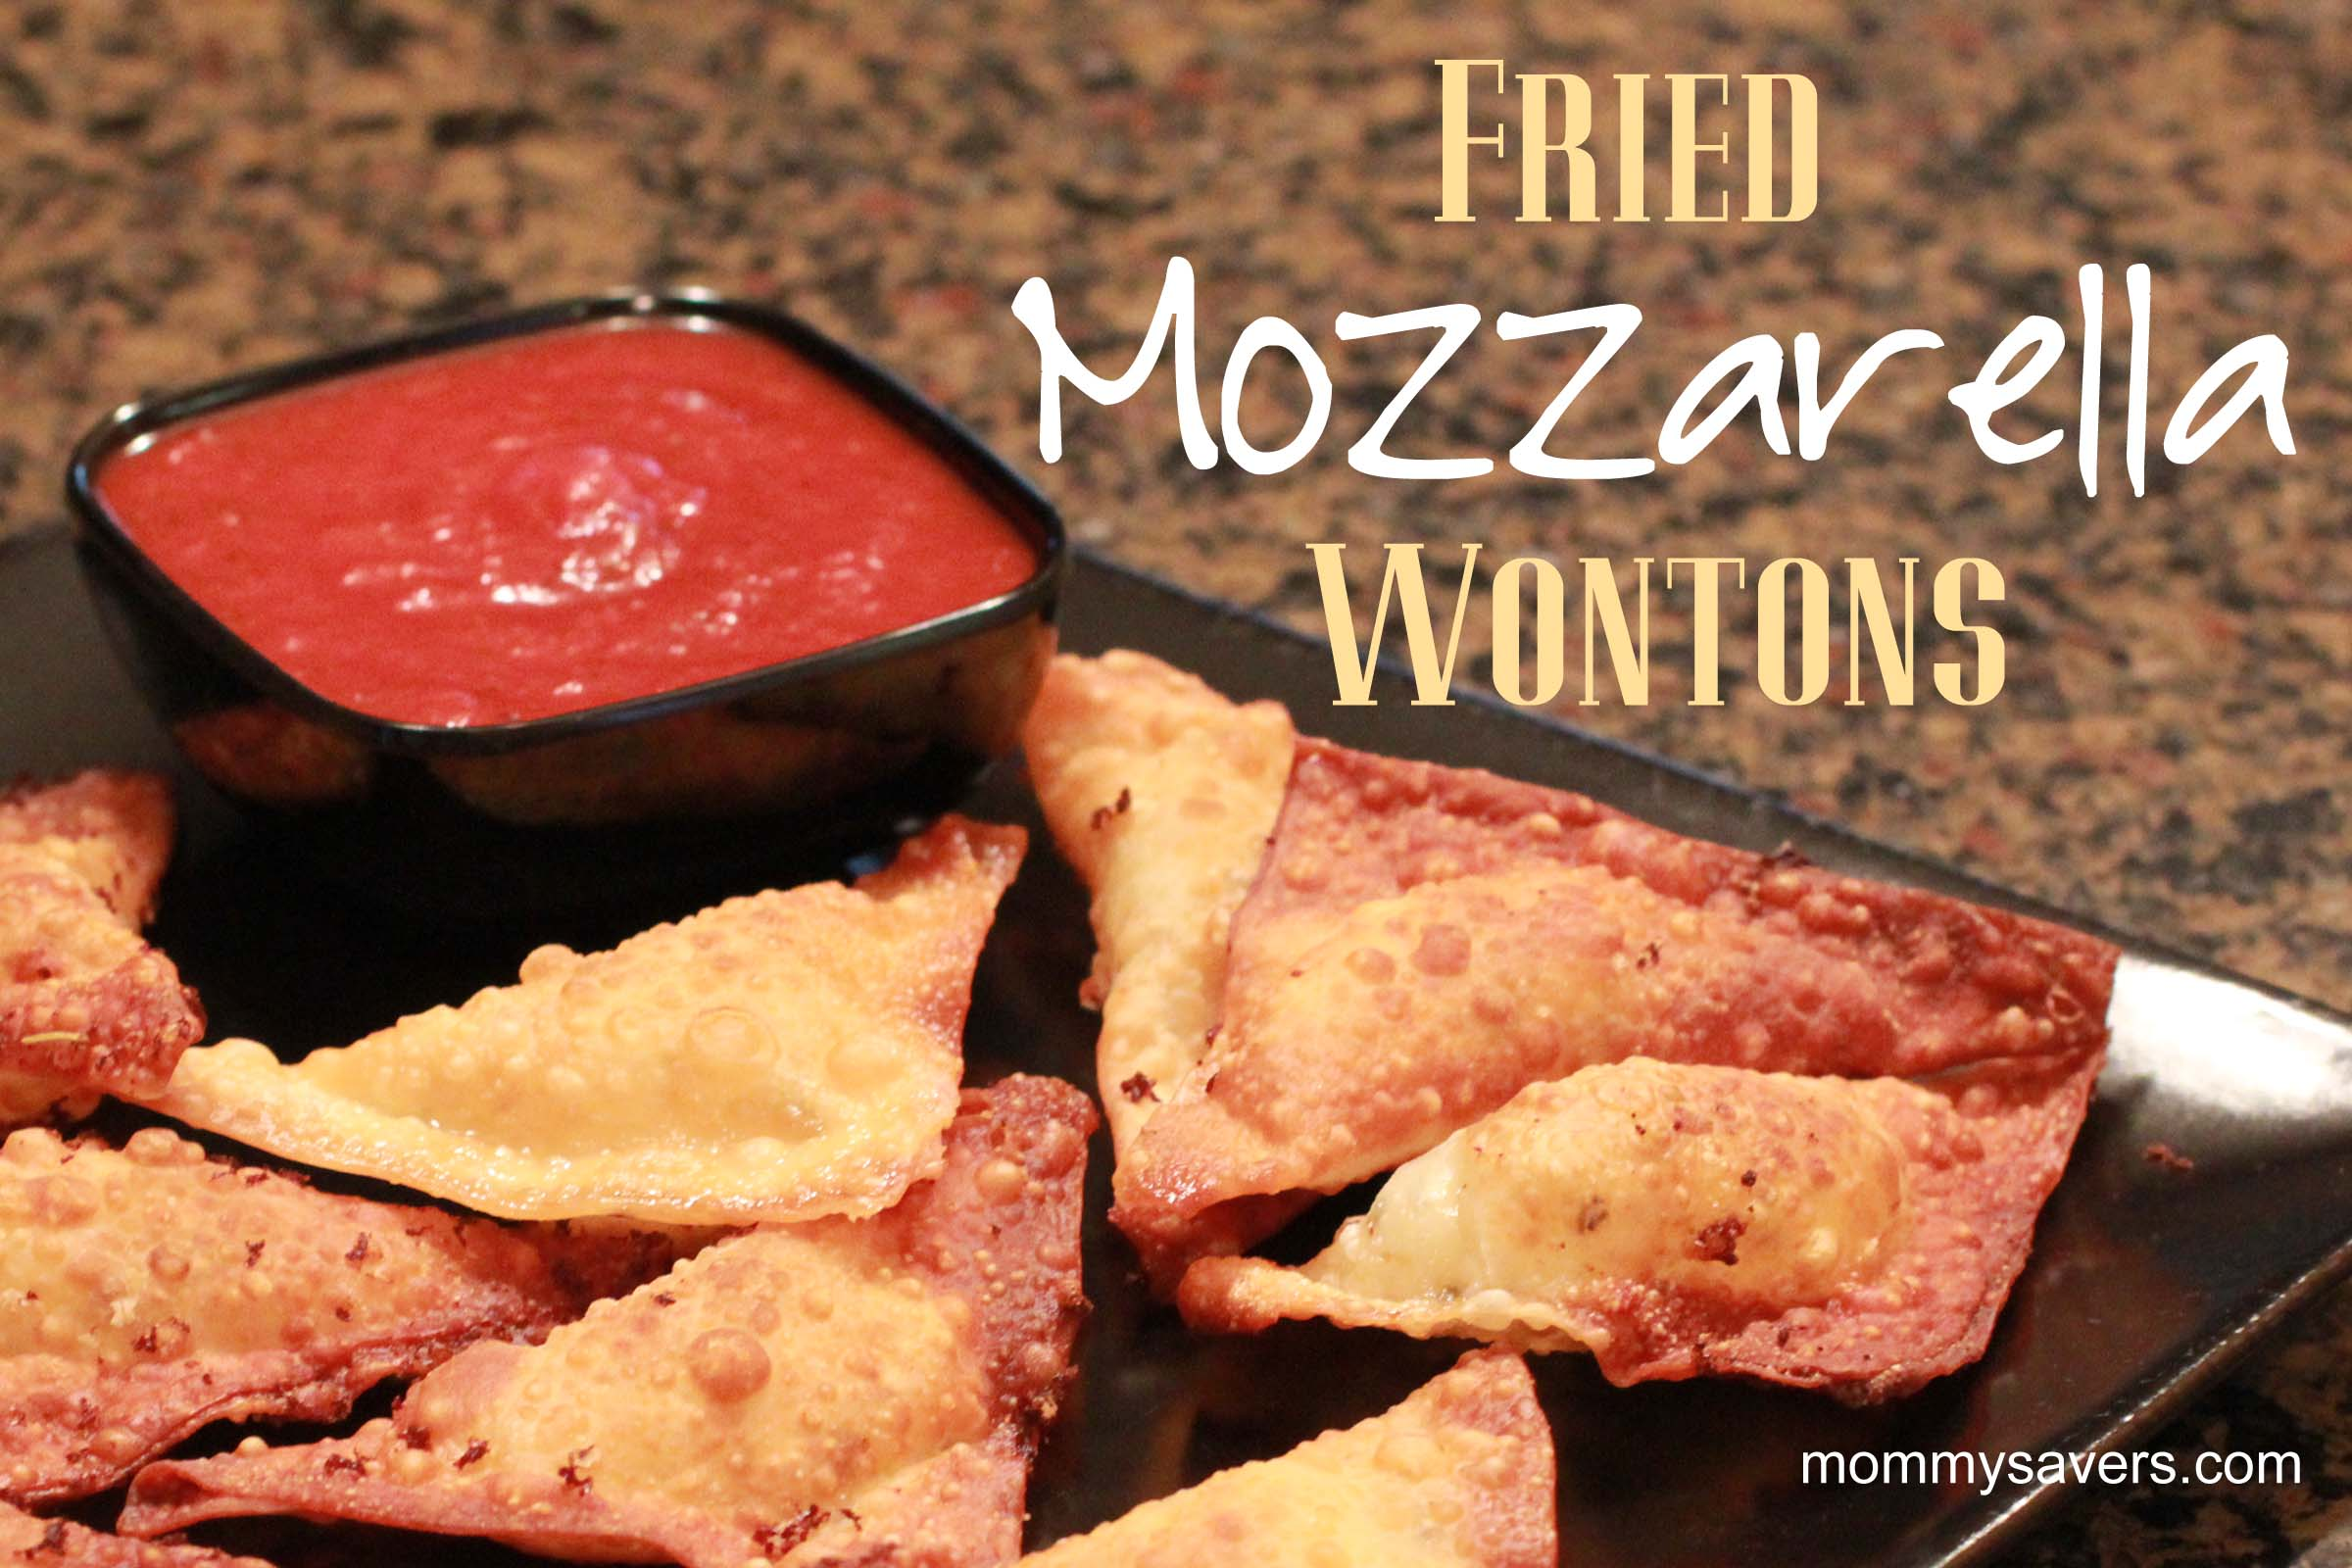 fried mozzarella wontons